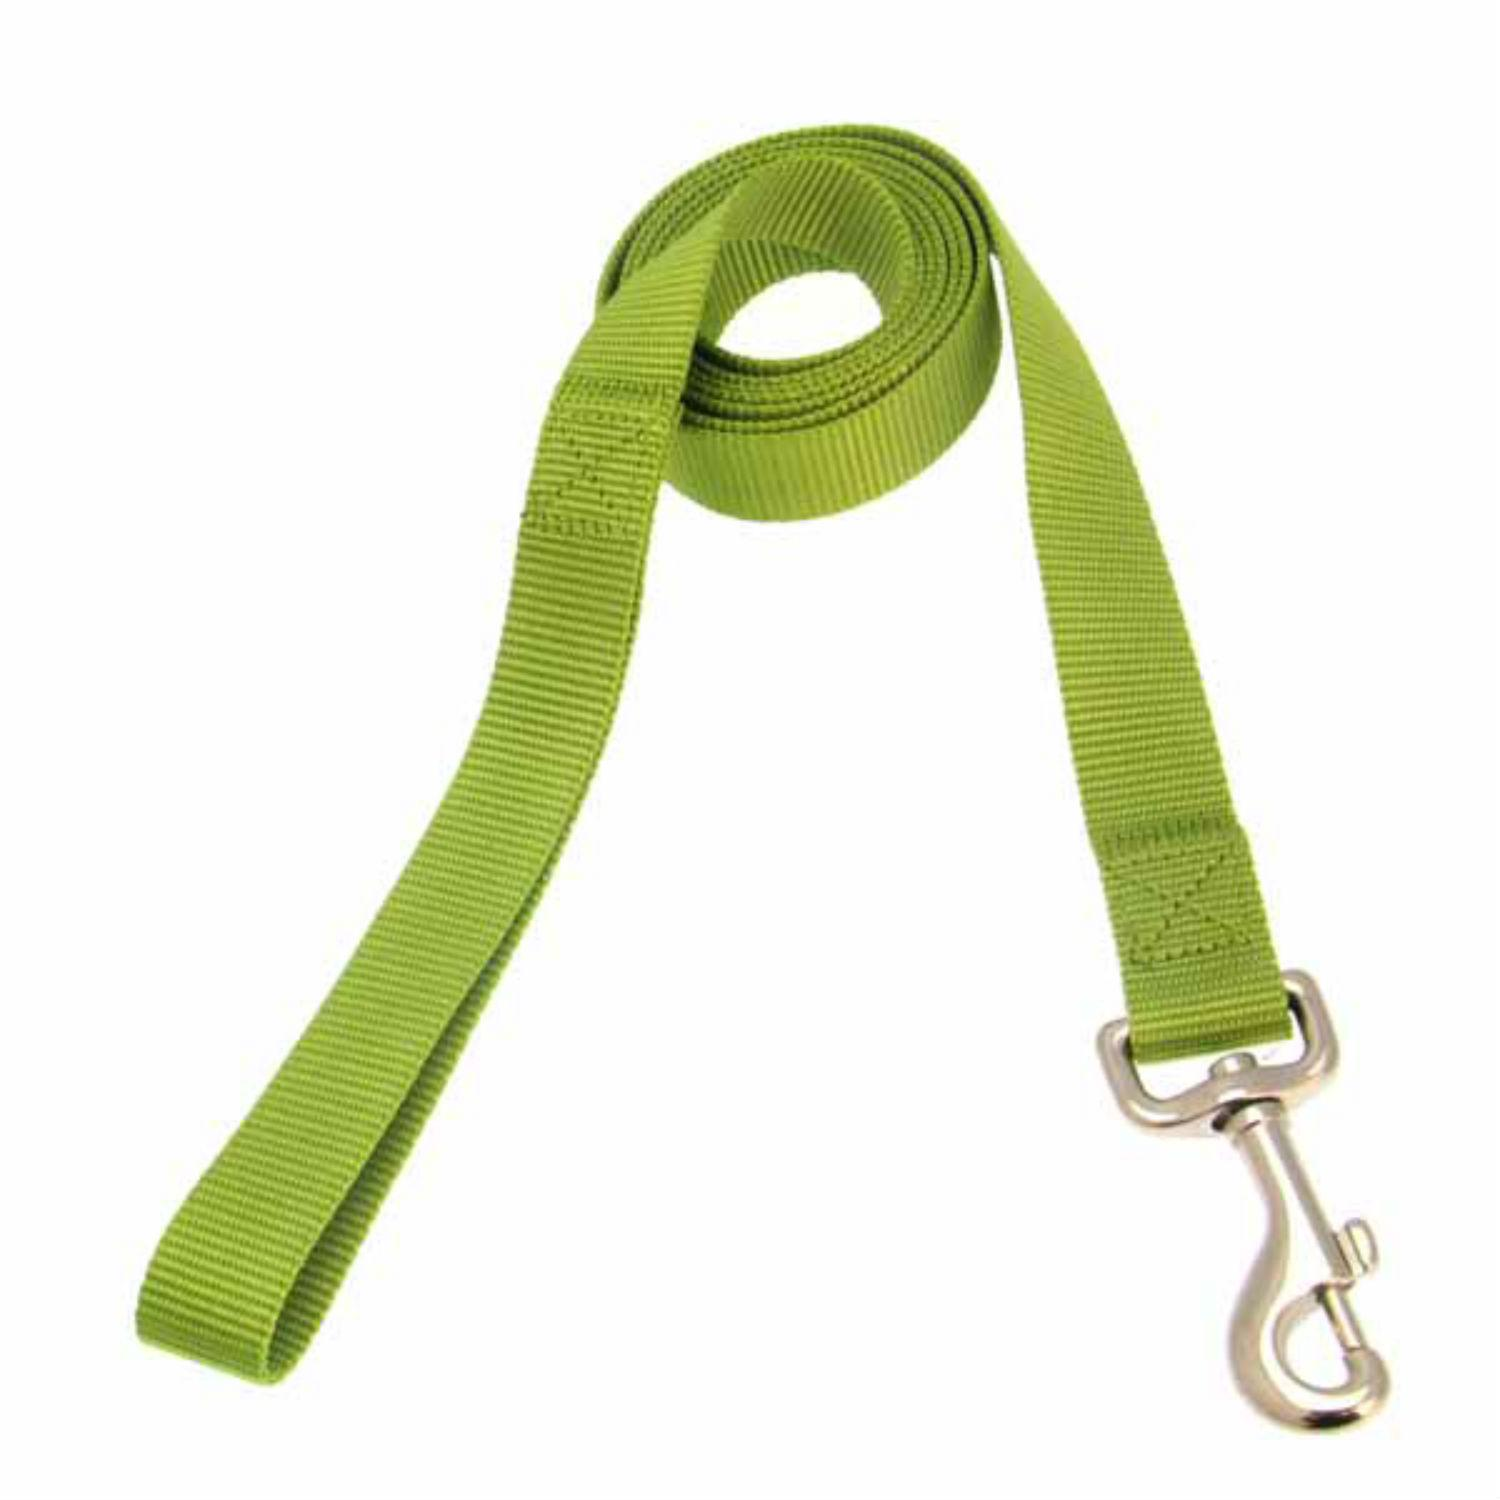 Casual Canine Nylon Dog Leash - Parrot Green